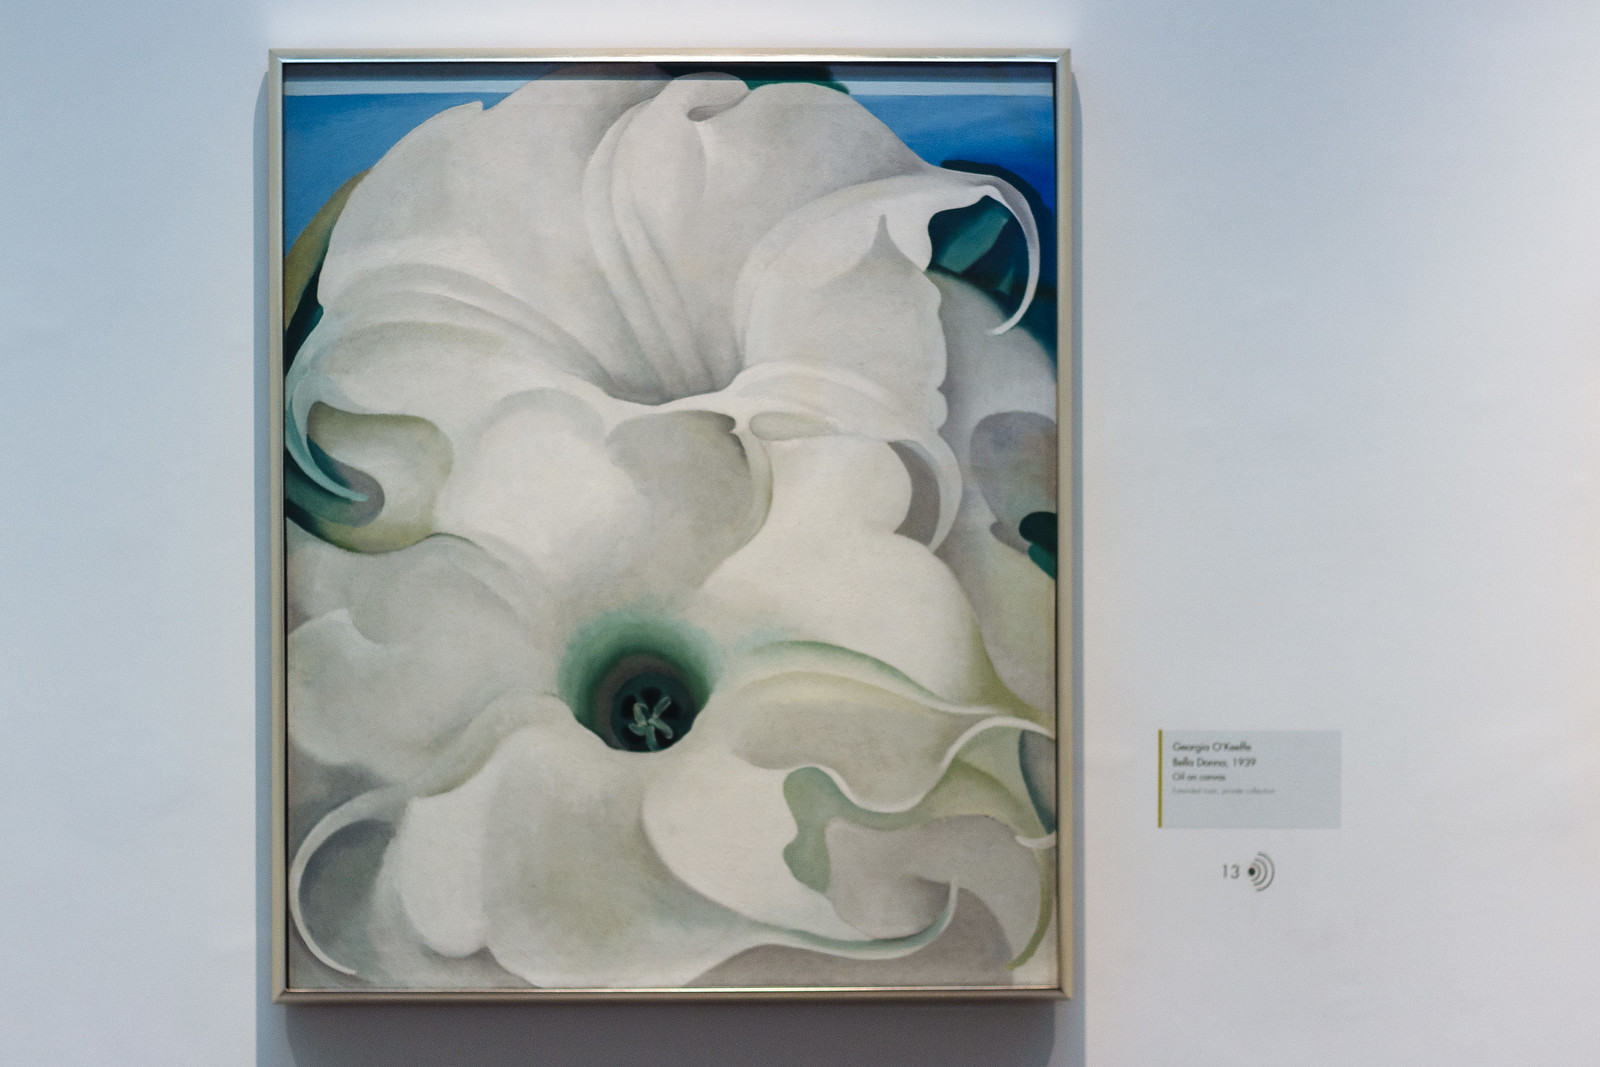 Painting of white flowers by Georgia O'Keefe in Santa Fe, New Mexico